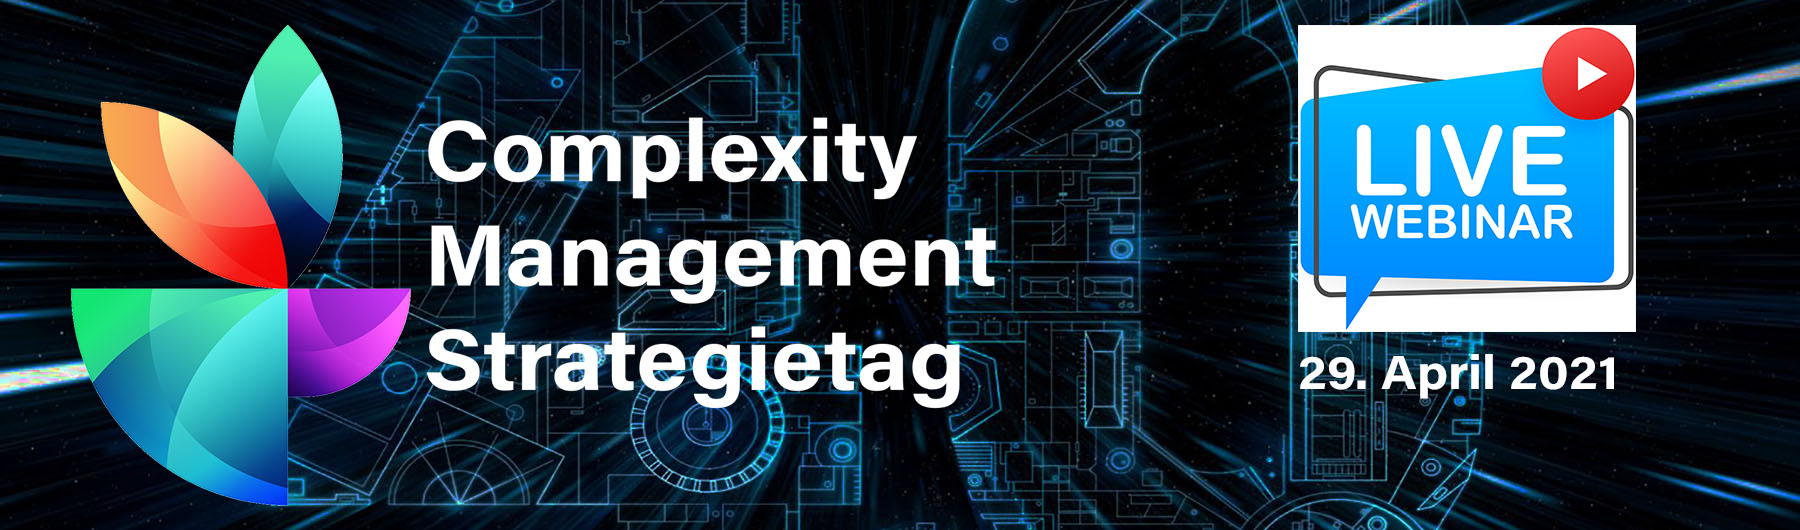 Complexity Management Strategietag 2021